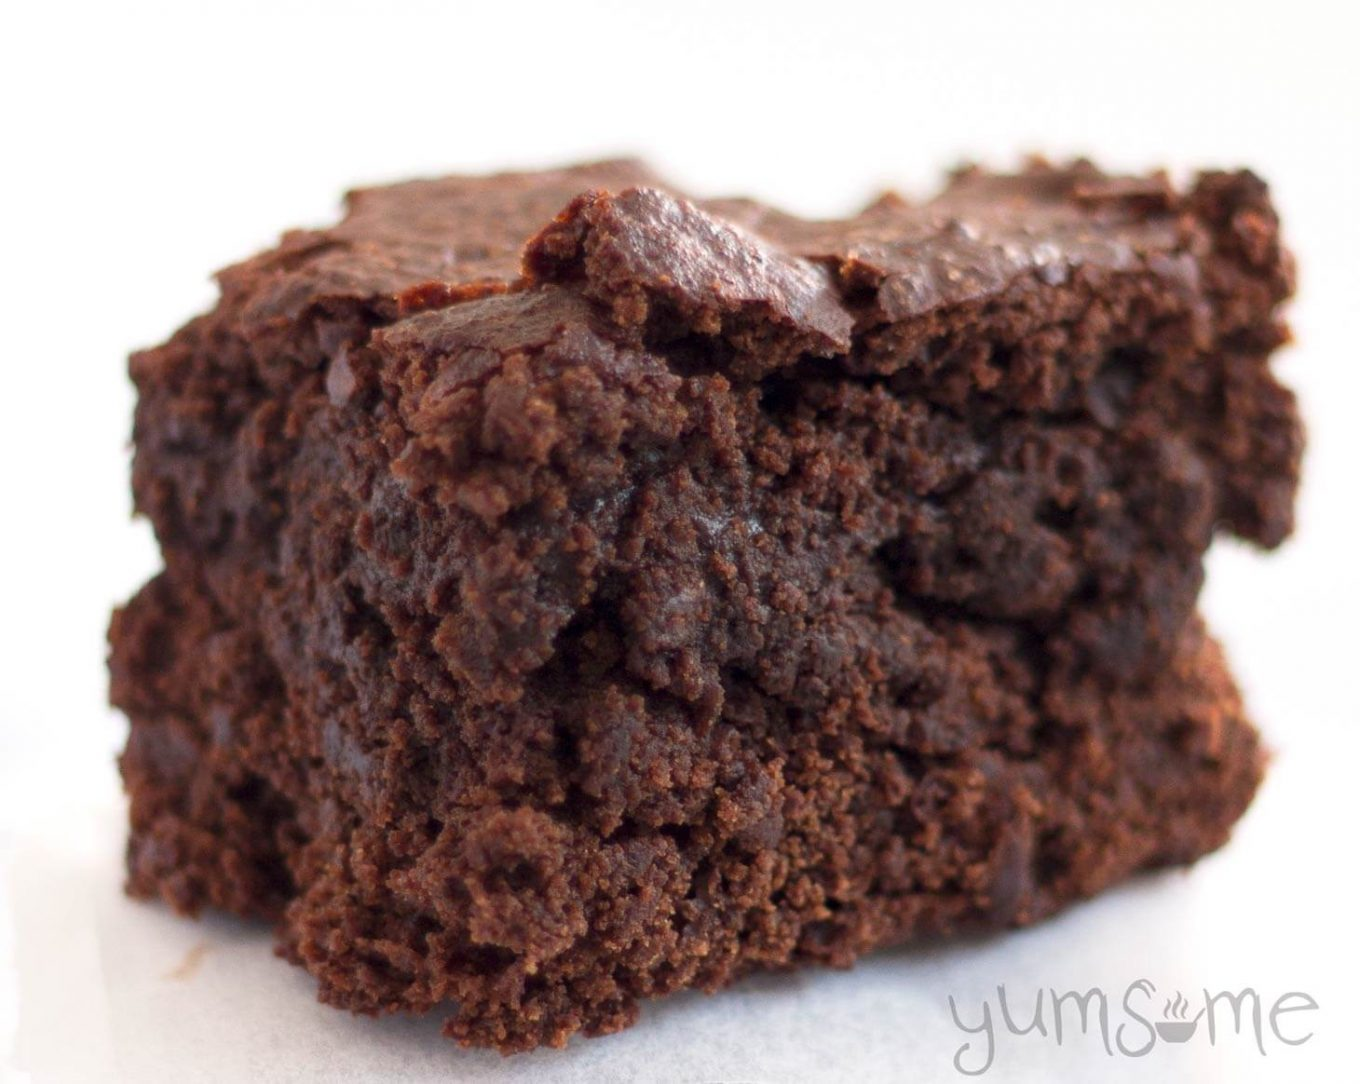 A vegan brownie on a white background.